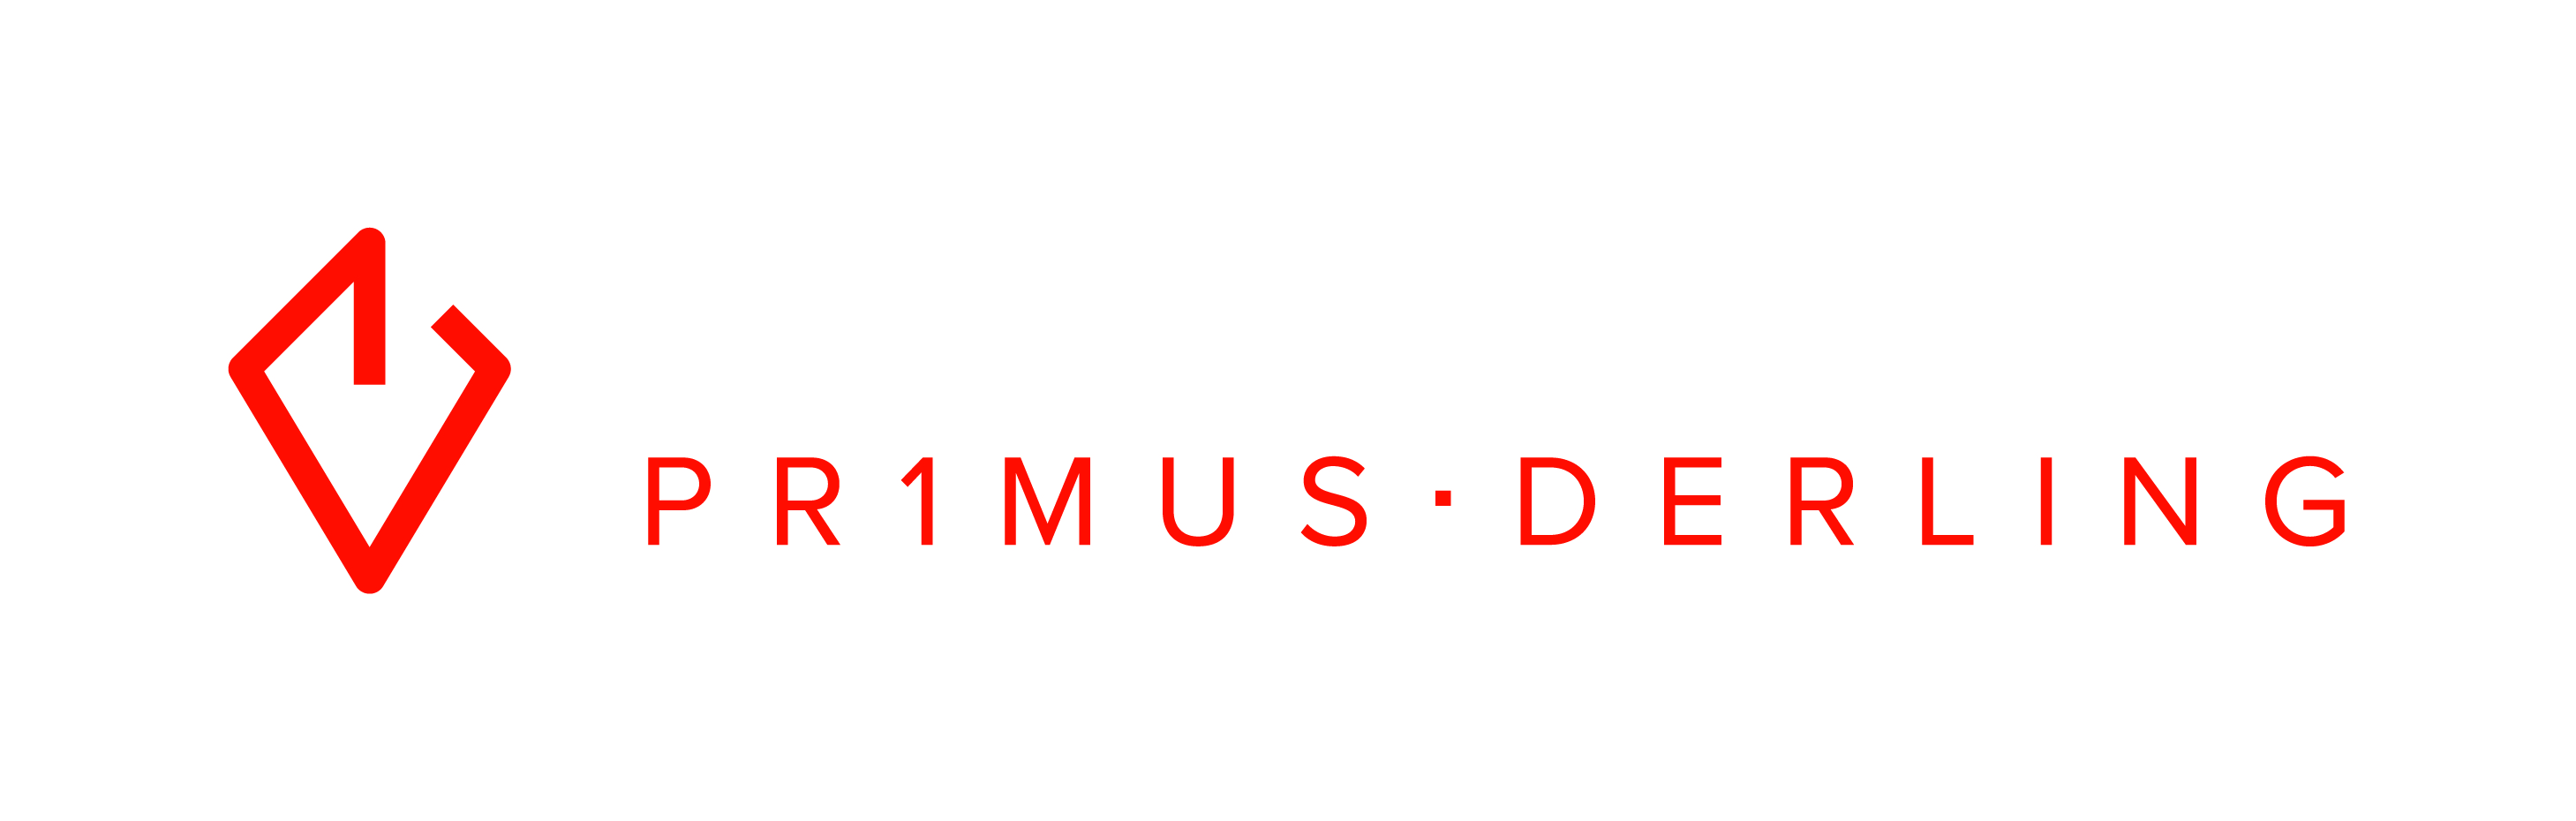 Primus-Derling_Logo_3_single_1_main_red